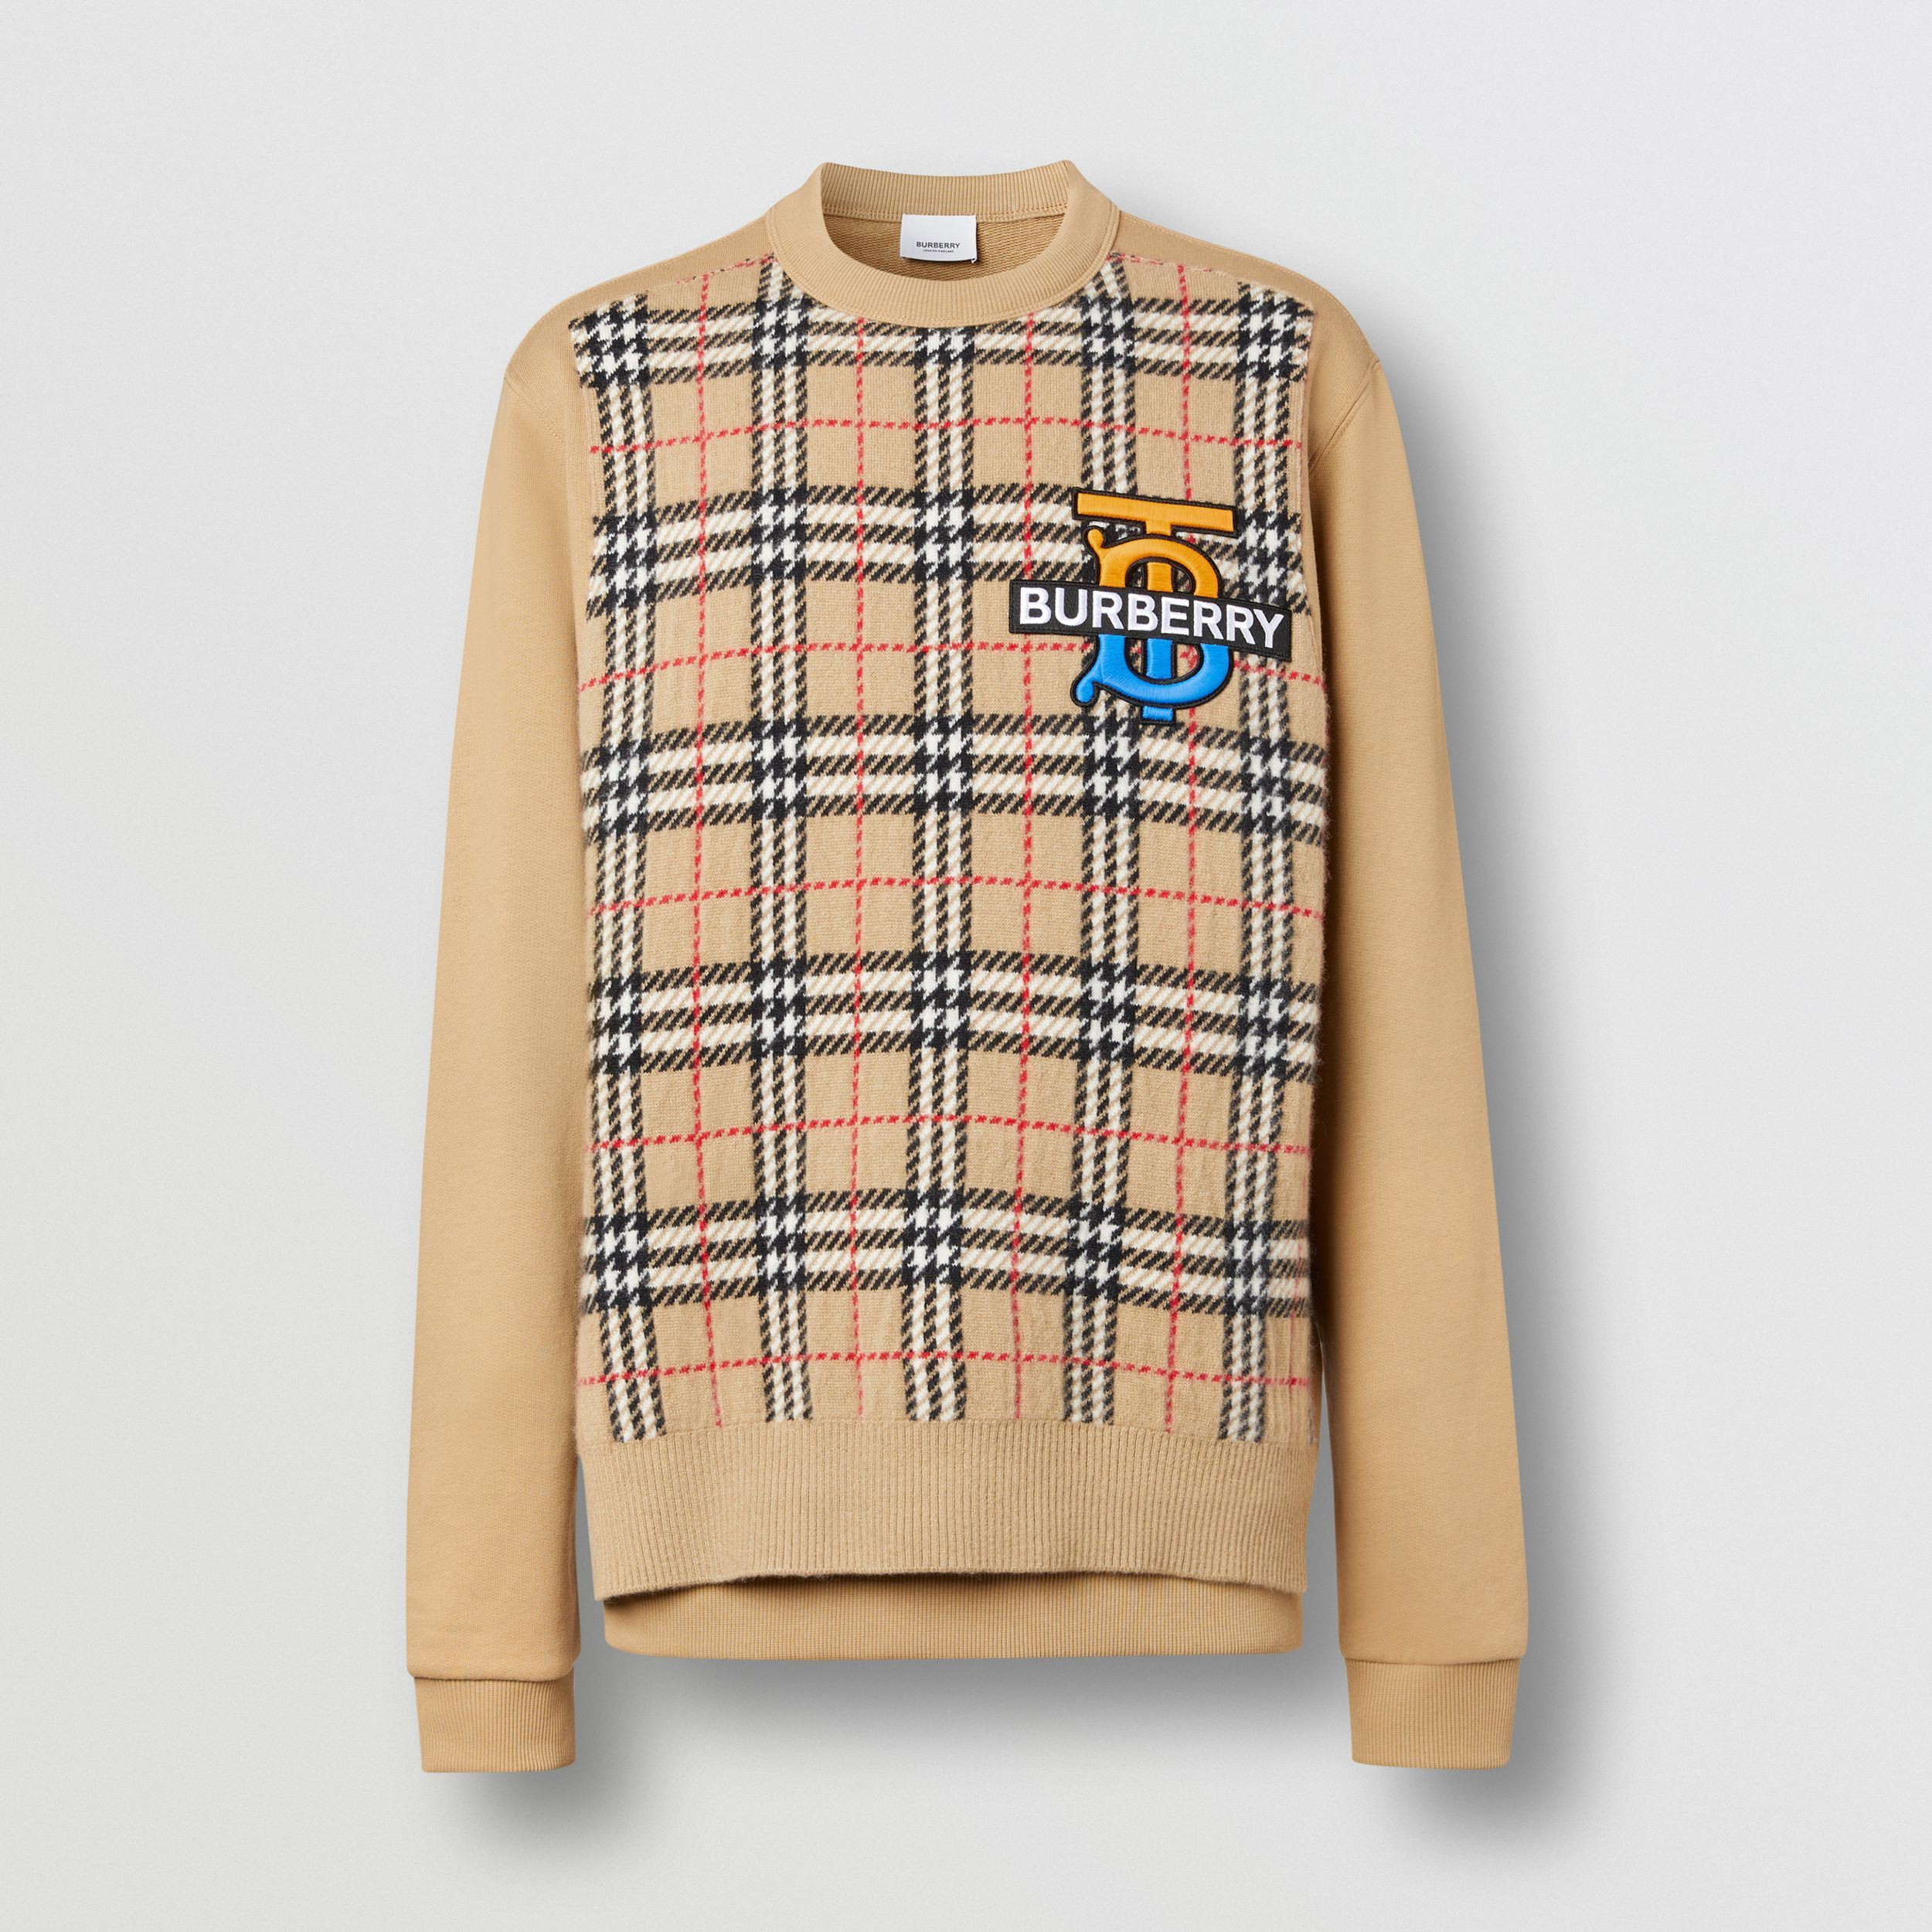 Monogram Motif Check Cashmere Panel Sweatshirt in Archive Beige - Men | Burberry Canada - 4